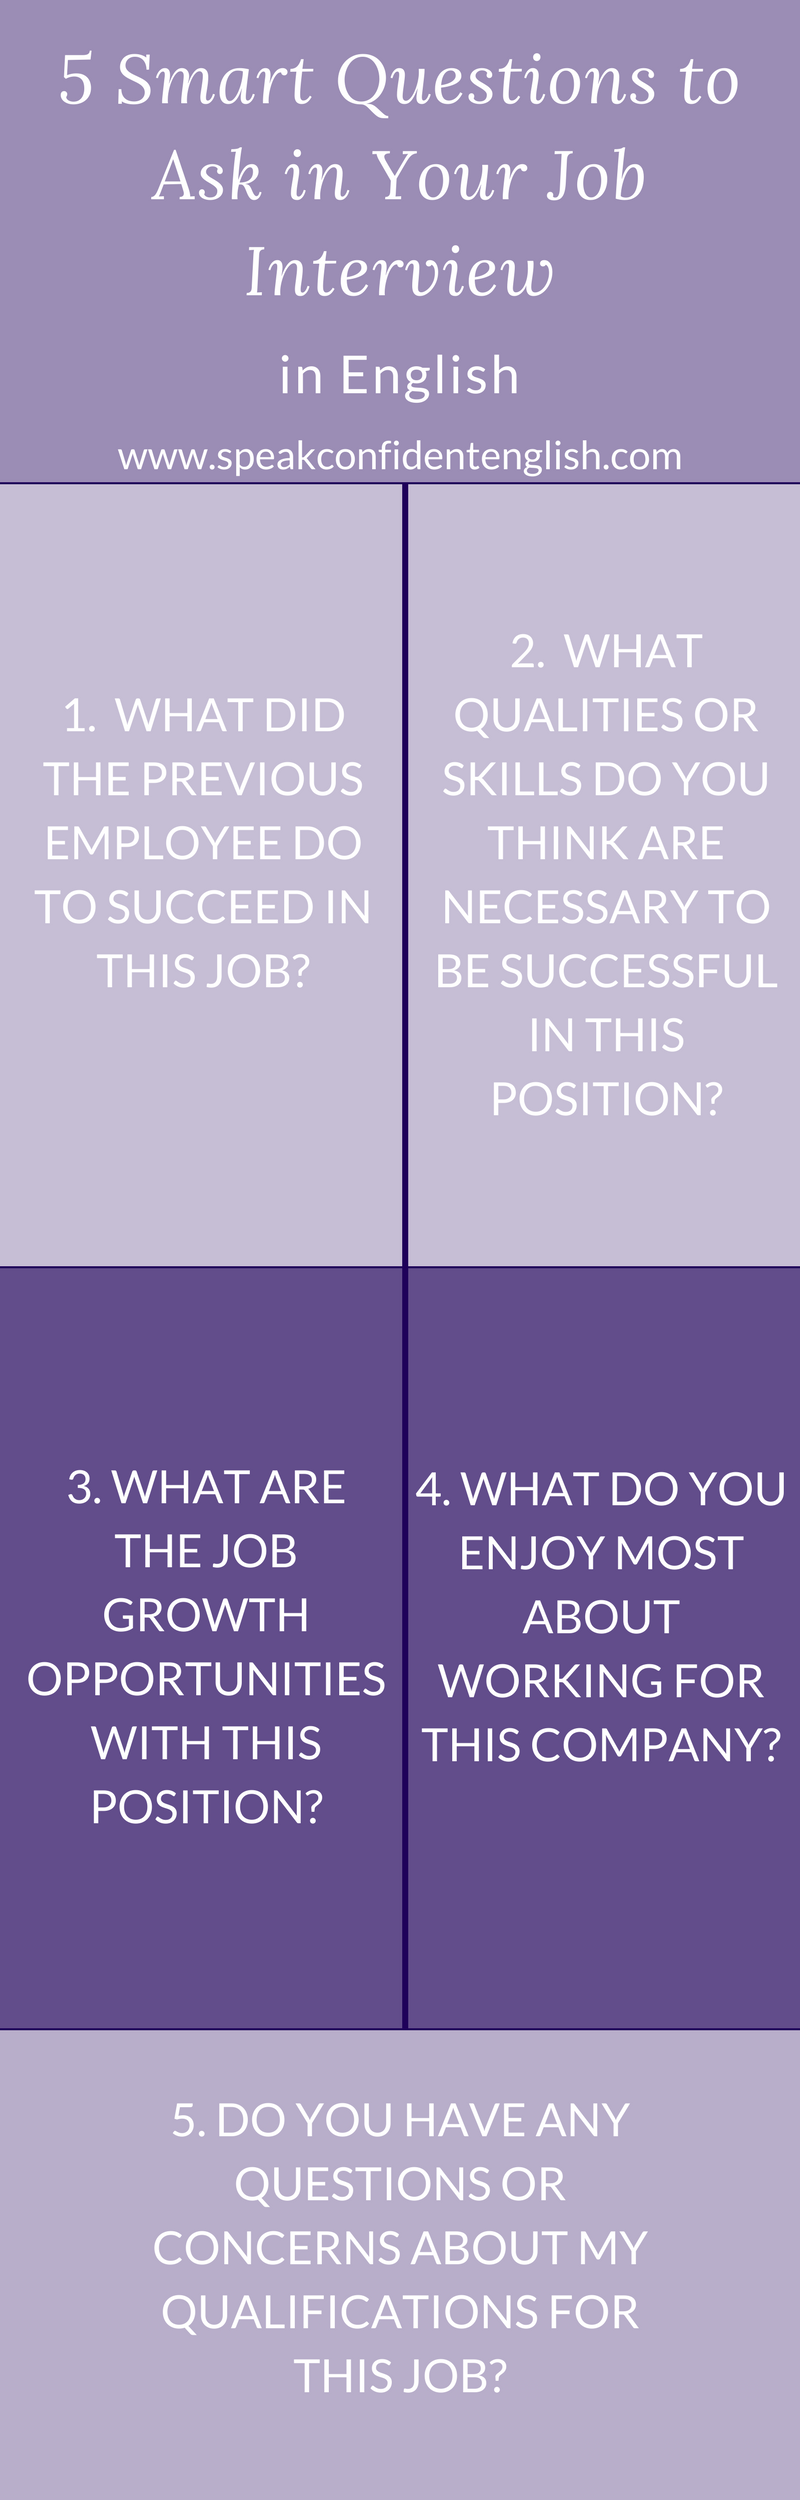 These Are Questions To Ask In An English Job Interview. Make A Strong  Impression At The End Of The Interview With These Smart Questions.